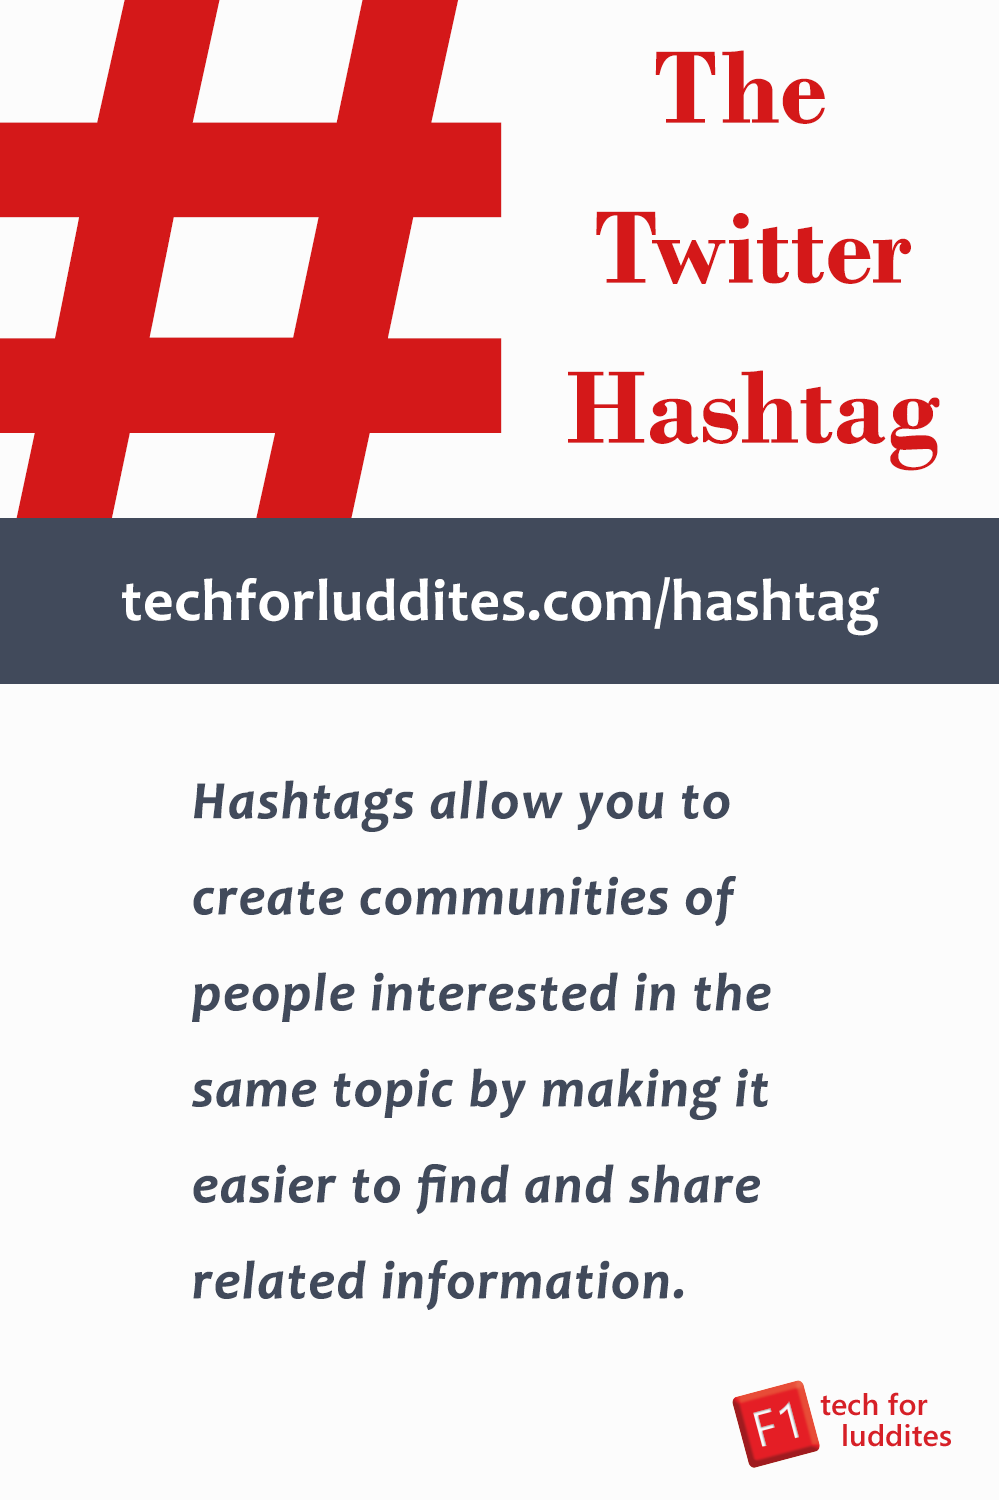 The Twitter Hashtag: What Is It and How Do You Use It?